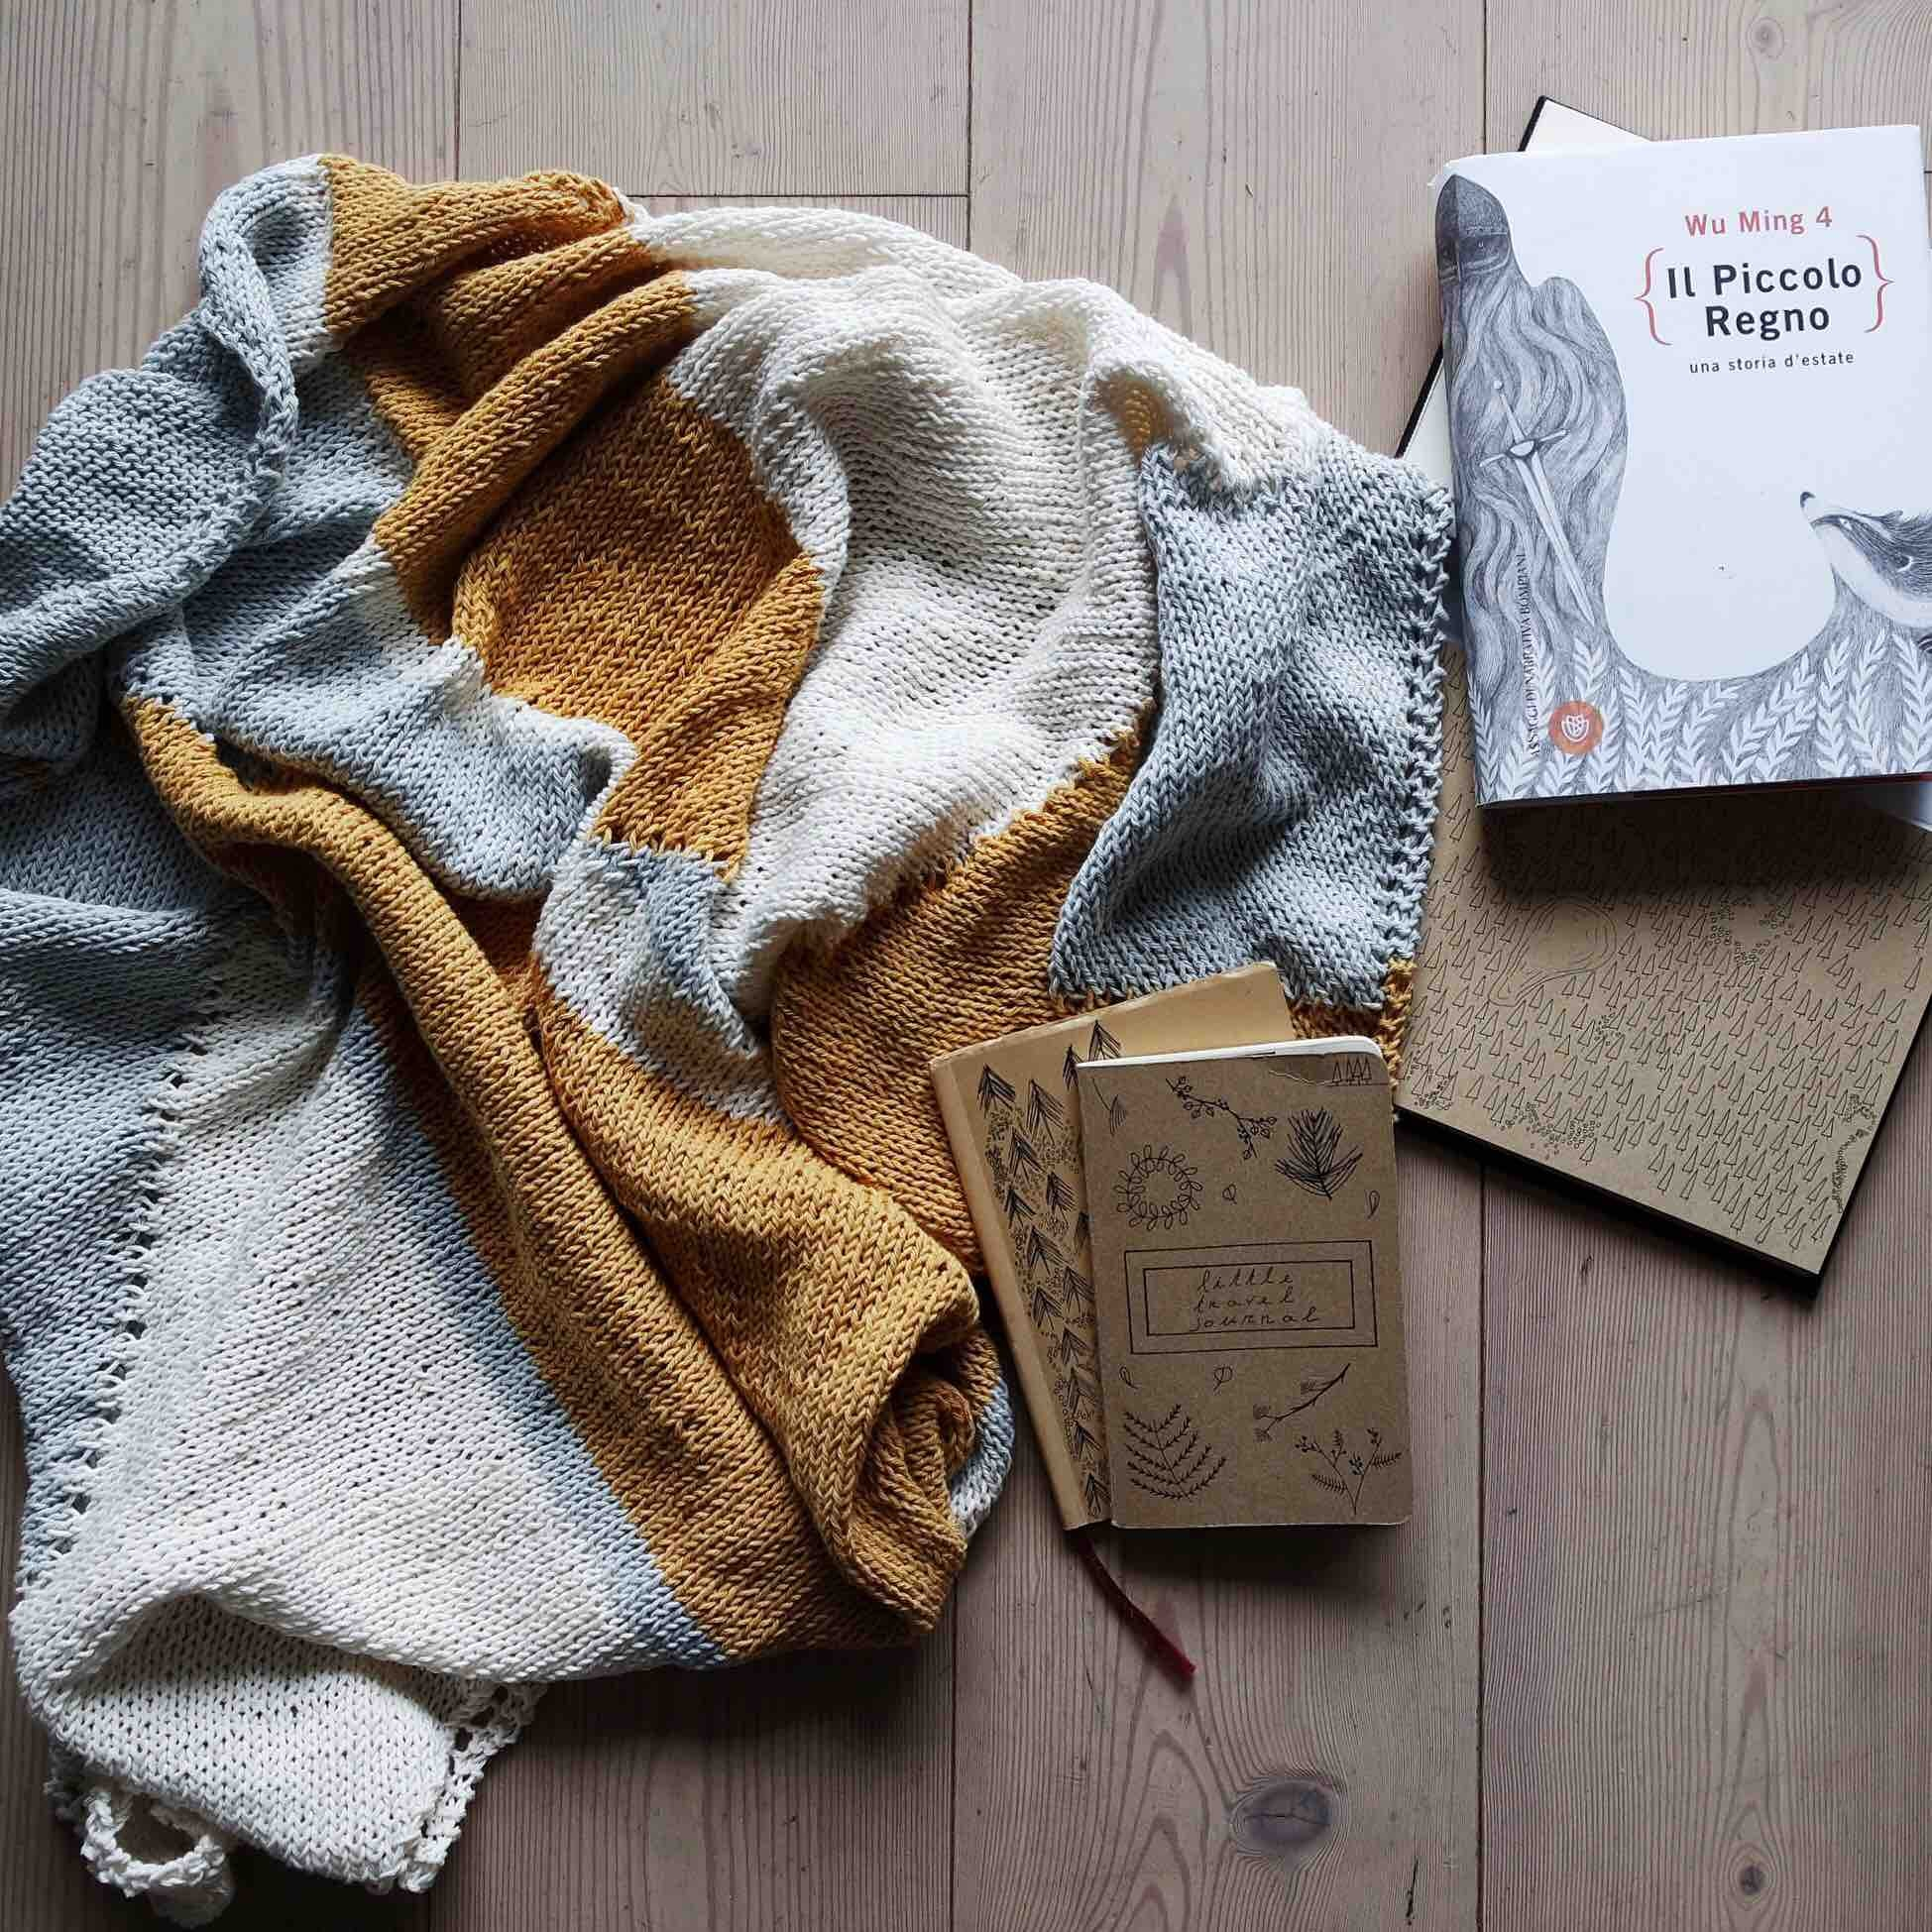 A quilted blanket, notebooks, and a book on a wood floor